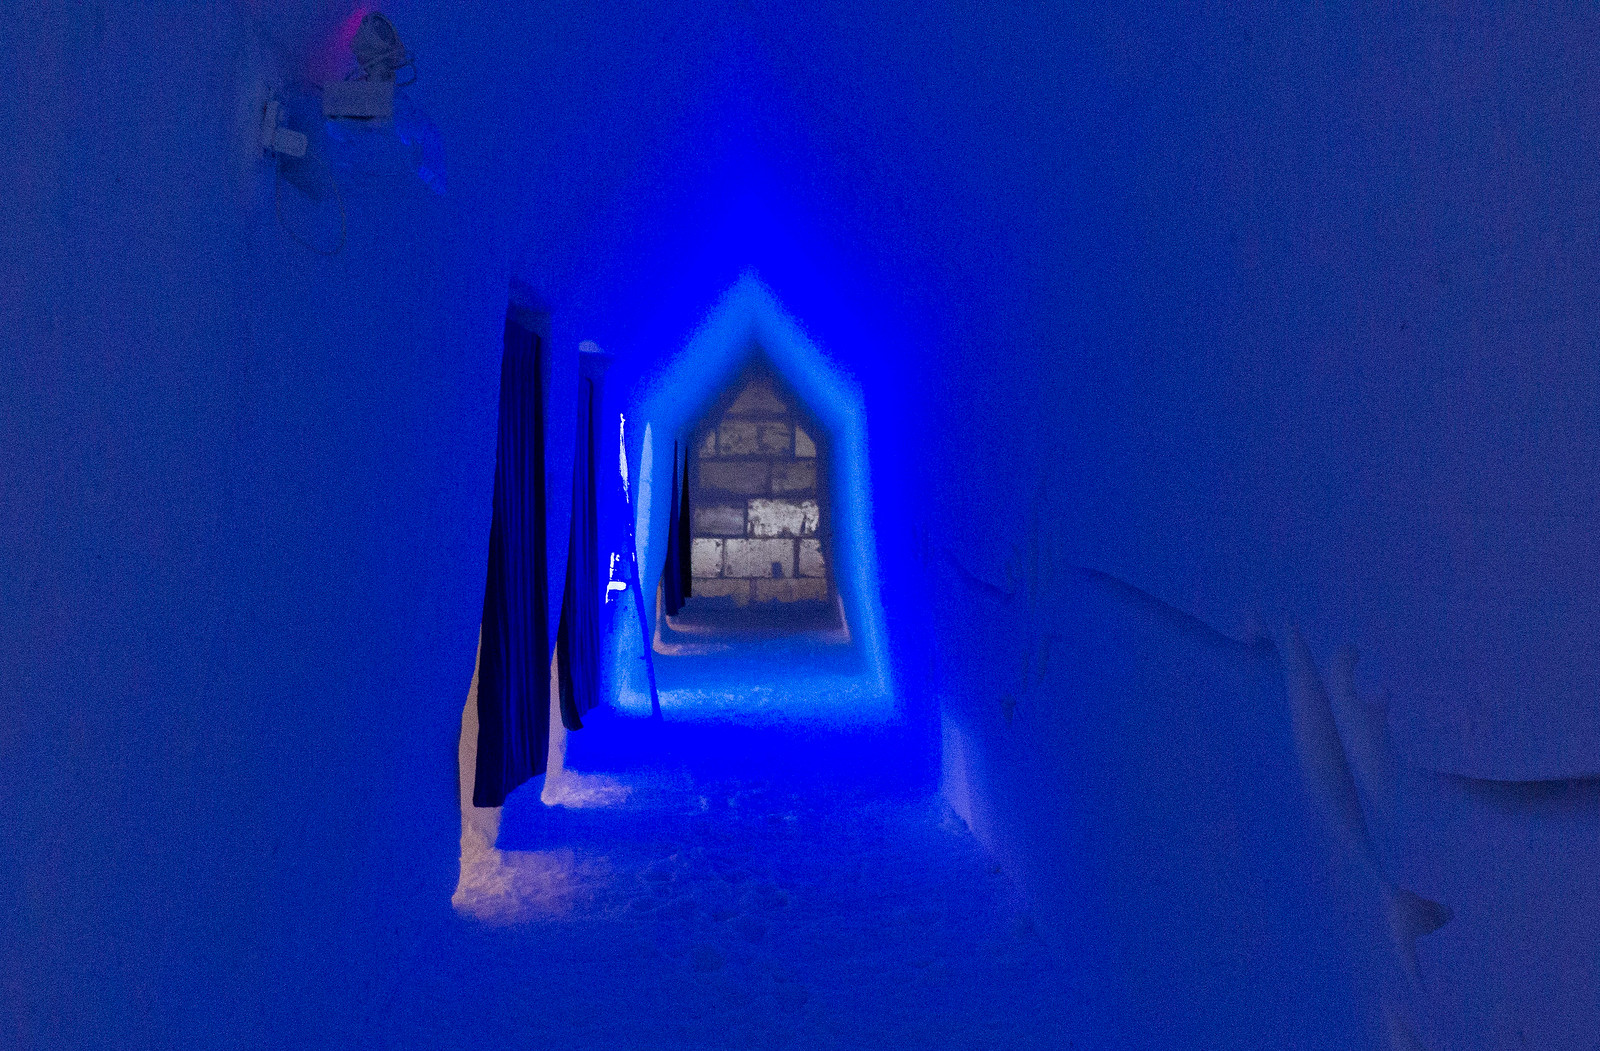 Ice Hotel Quebec: An Insider's Guide to Surviving the Night - Our room